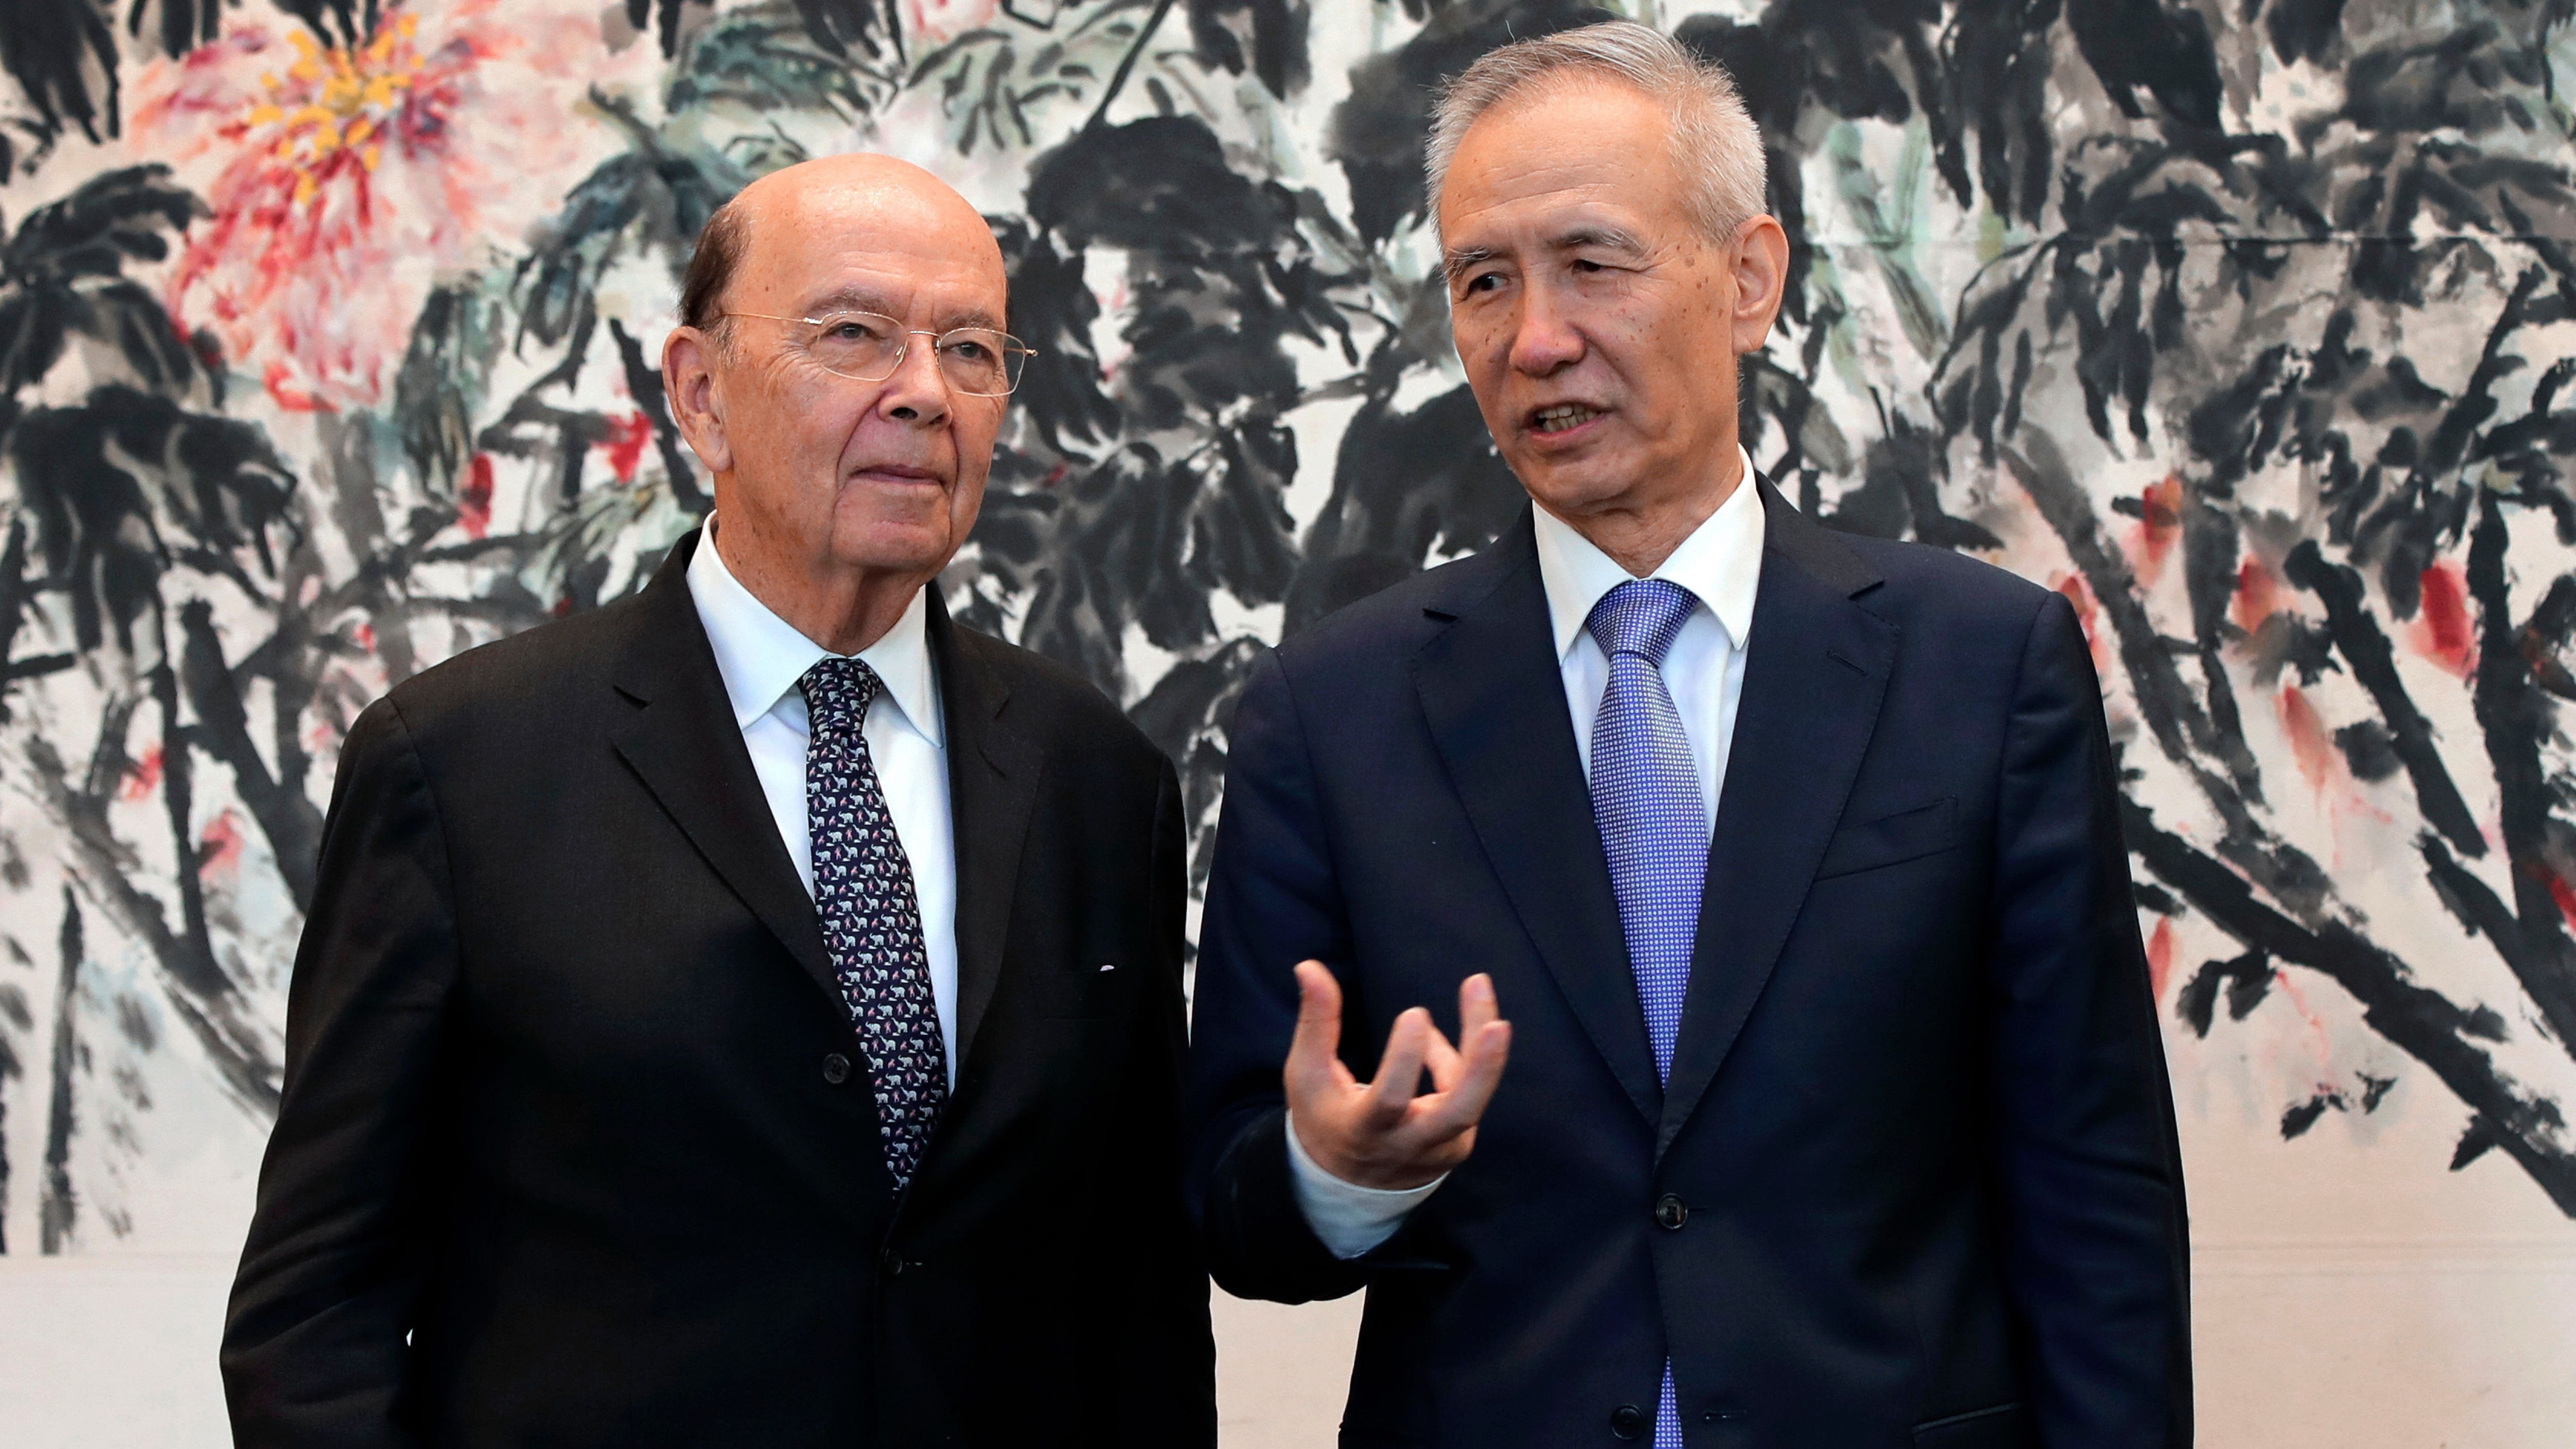 U.S. Commerce Secretary Wilbur Ross, left, chats with Chinese Vice Premier Liu He during a photograph session after their meeting at the Diaoyutai State Guesthouse in Beijing, Sunday, June 3, 2018. U.S. and Chinese officials have discussed specific American export items Beijing might buy as part of its pledge to narrow its trade surplus with the United States, U.S. Commerce Secretary Ross said Sunday as the two sides began a new round of talks in Beijing aimed at settling a simmering trade dispute. (AP Photo/Andy Wong, Pool)